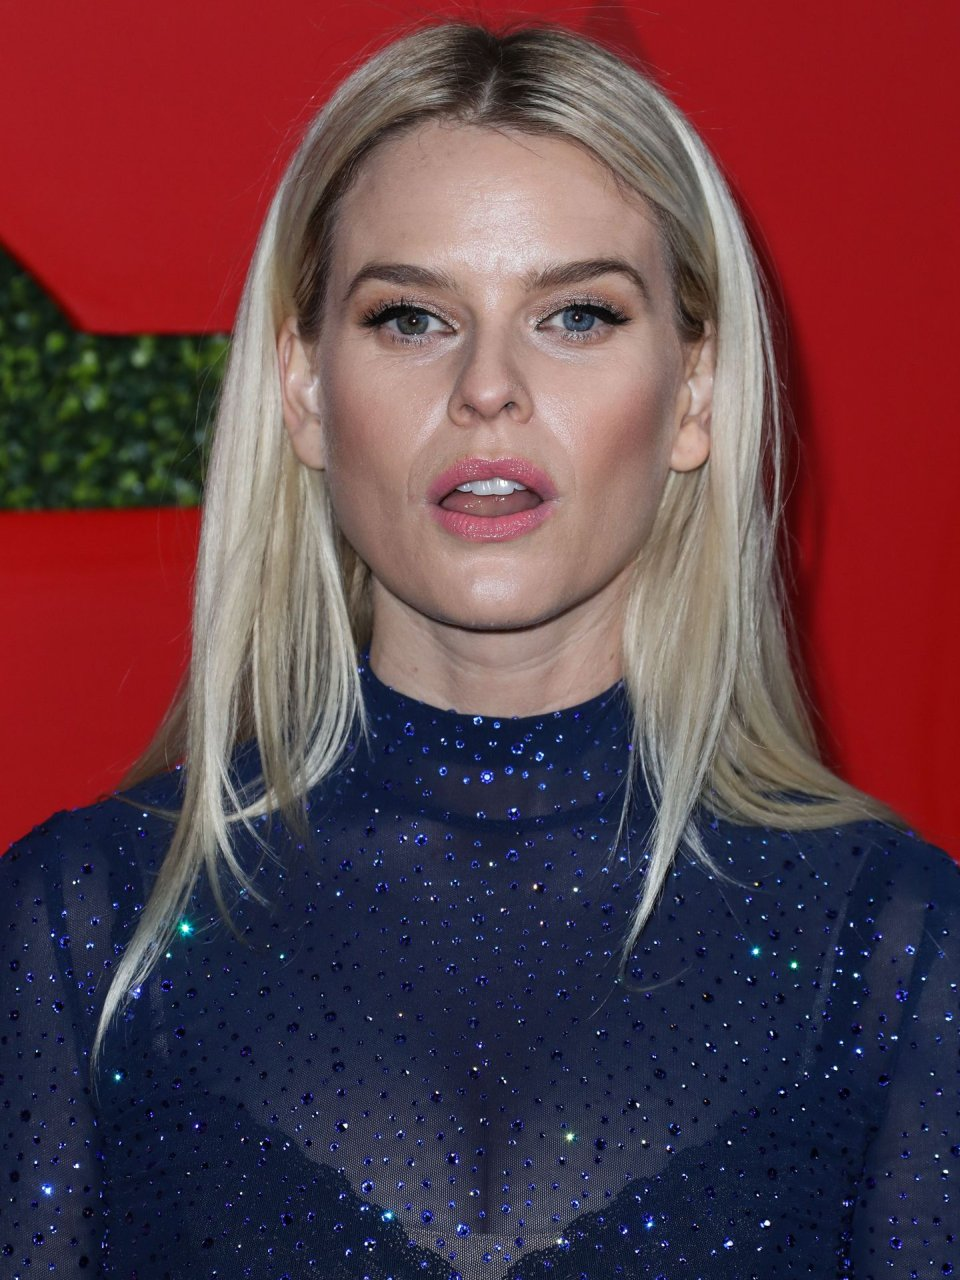 Daring Hottie Alice Eve Flashing Her Body in a Transparent